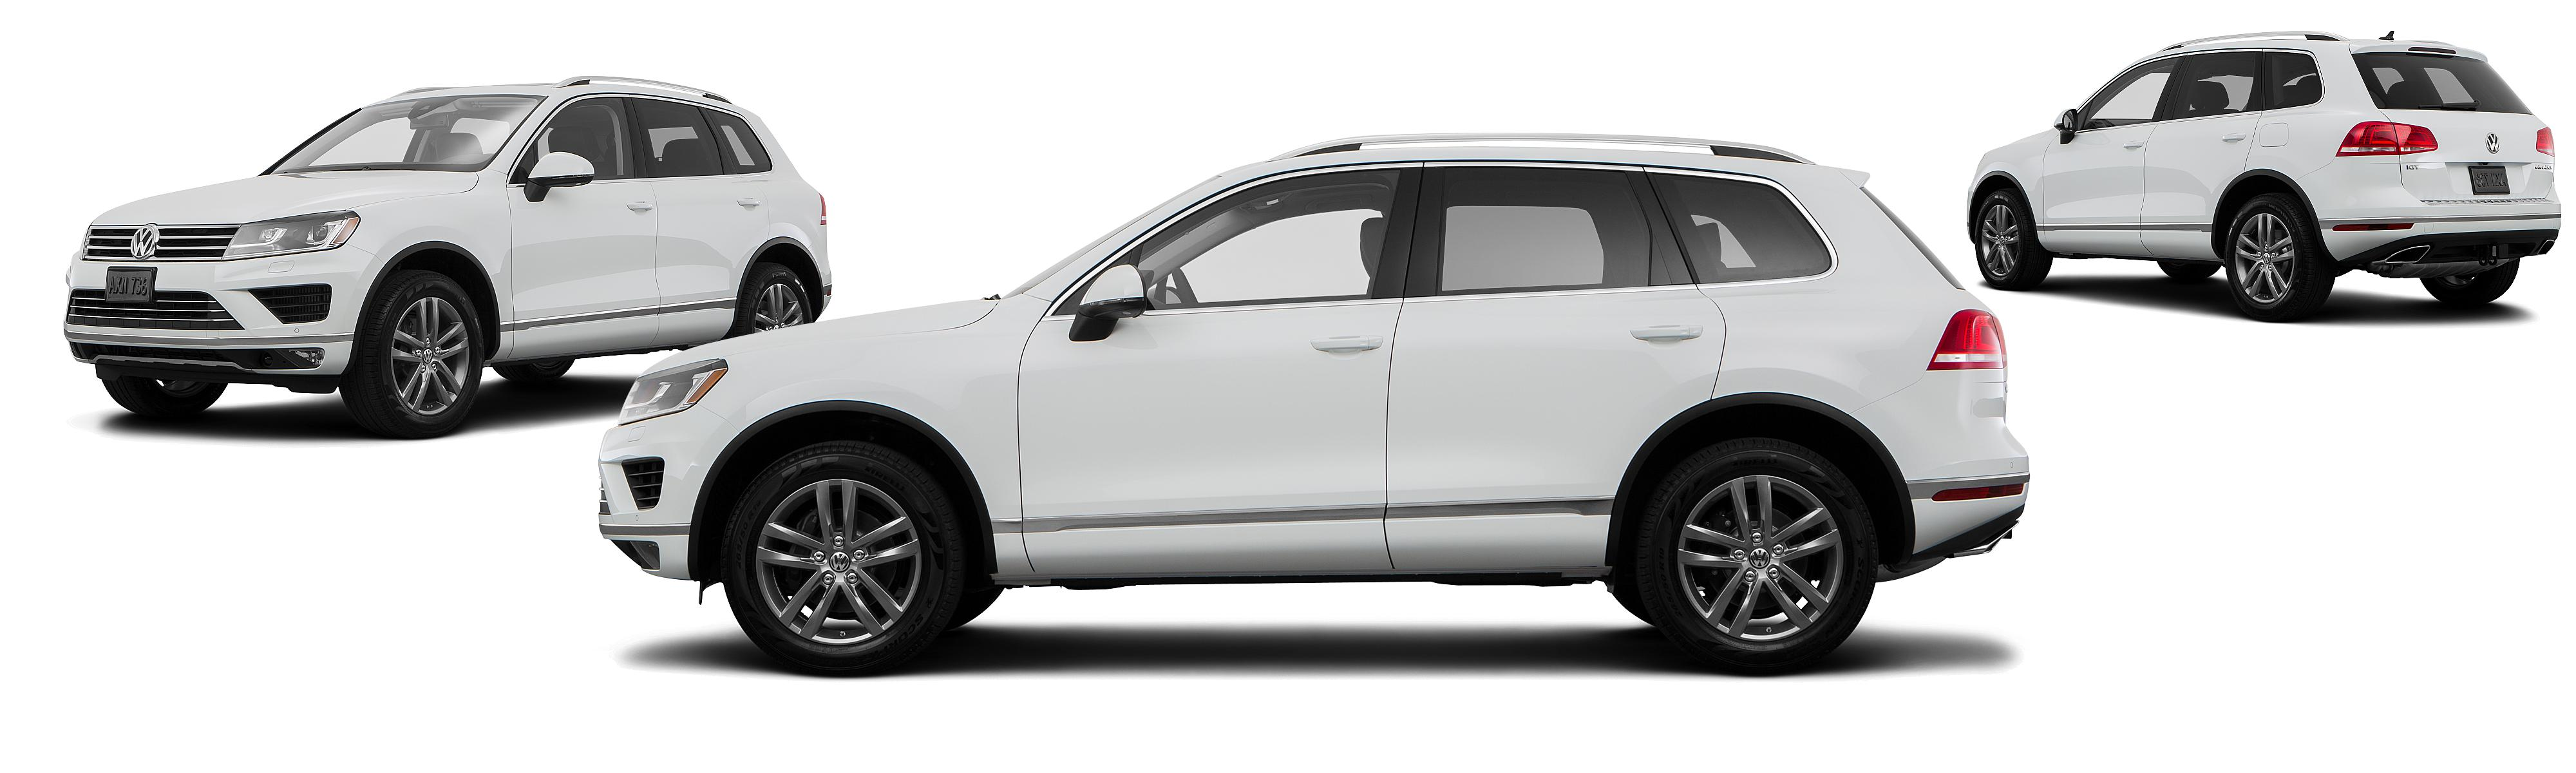 features original touareg of blog why volkswagen families oneonta love the